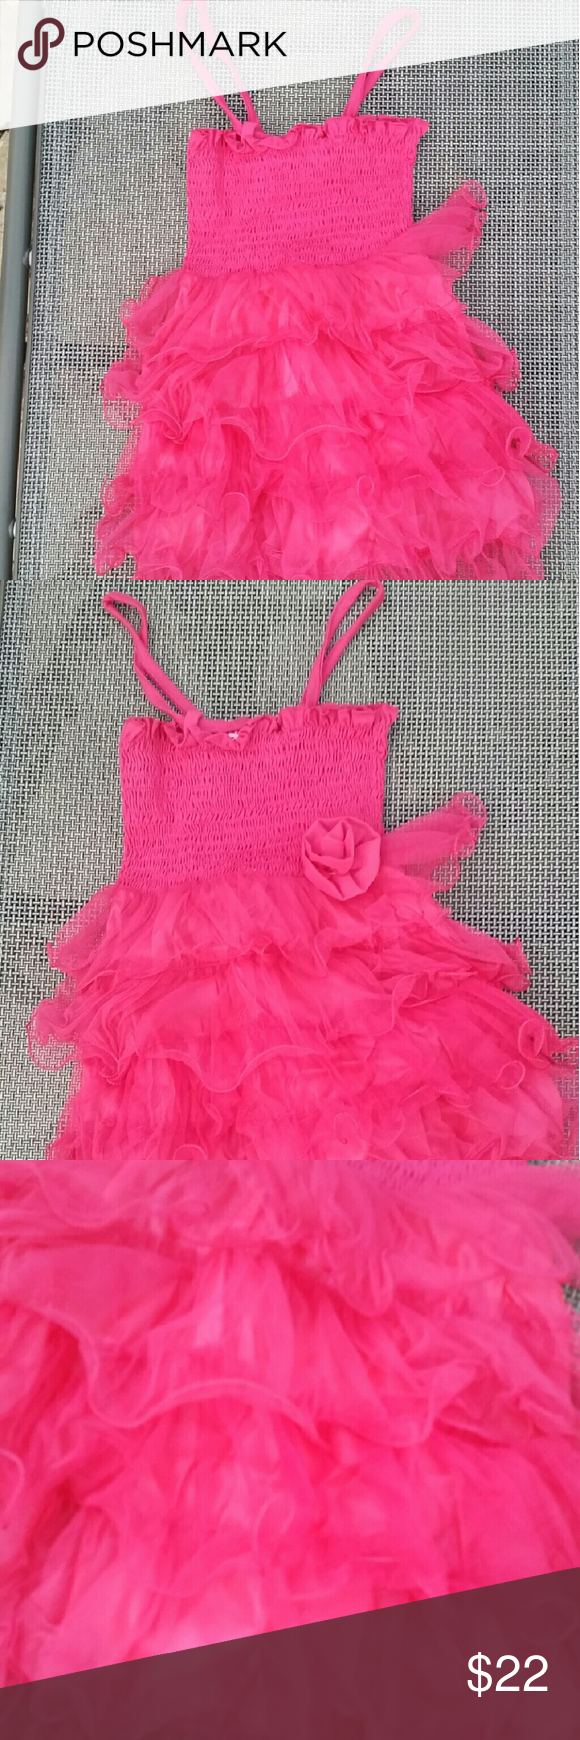 Lowest price donating monday hot pink tulle dress nwt pink tulle